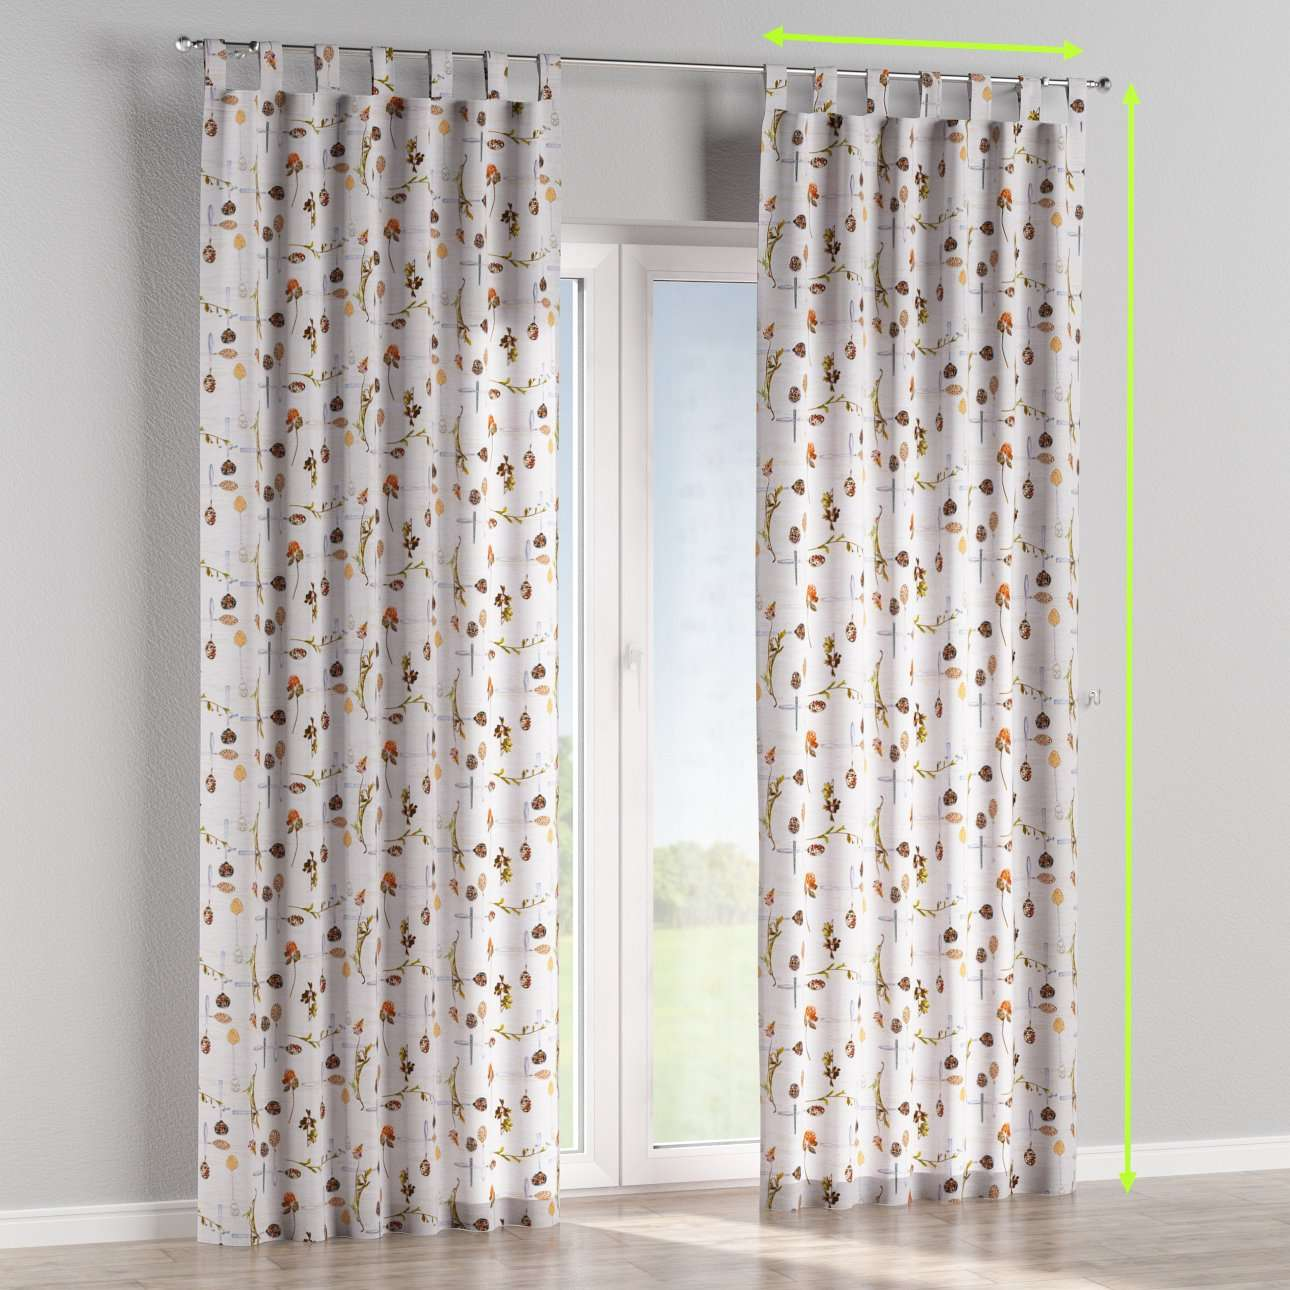 Tab top curtains in collection Flowers, fabric: 140-11